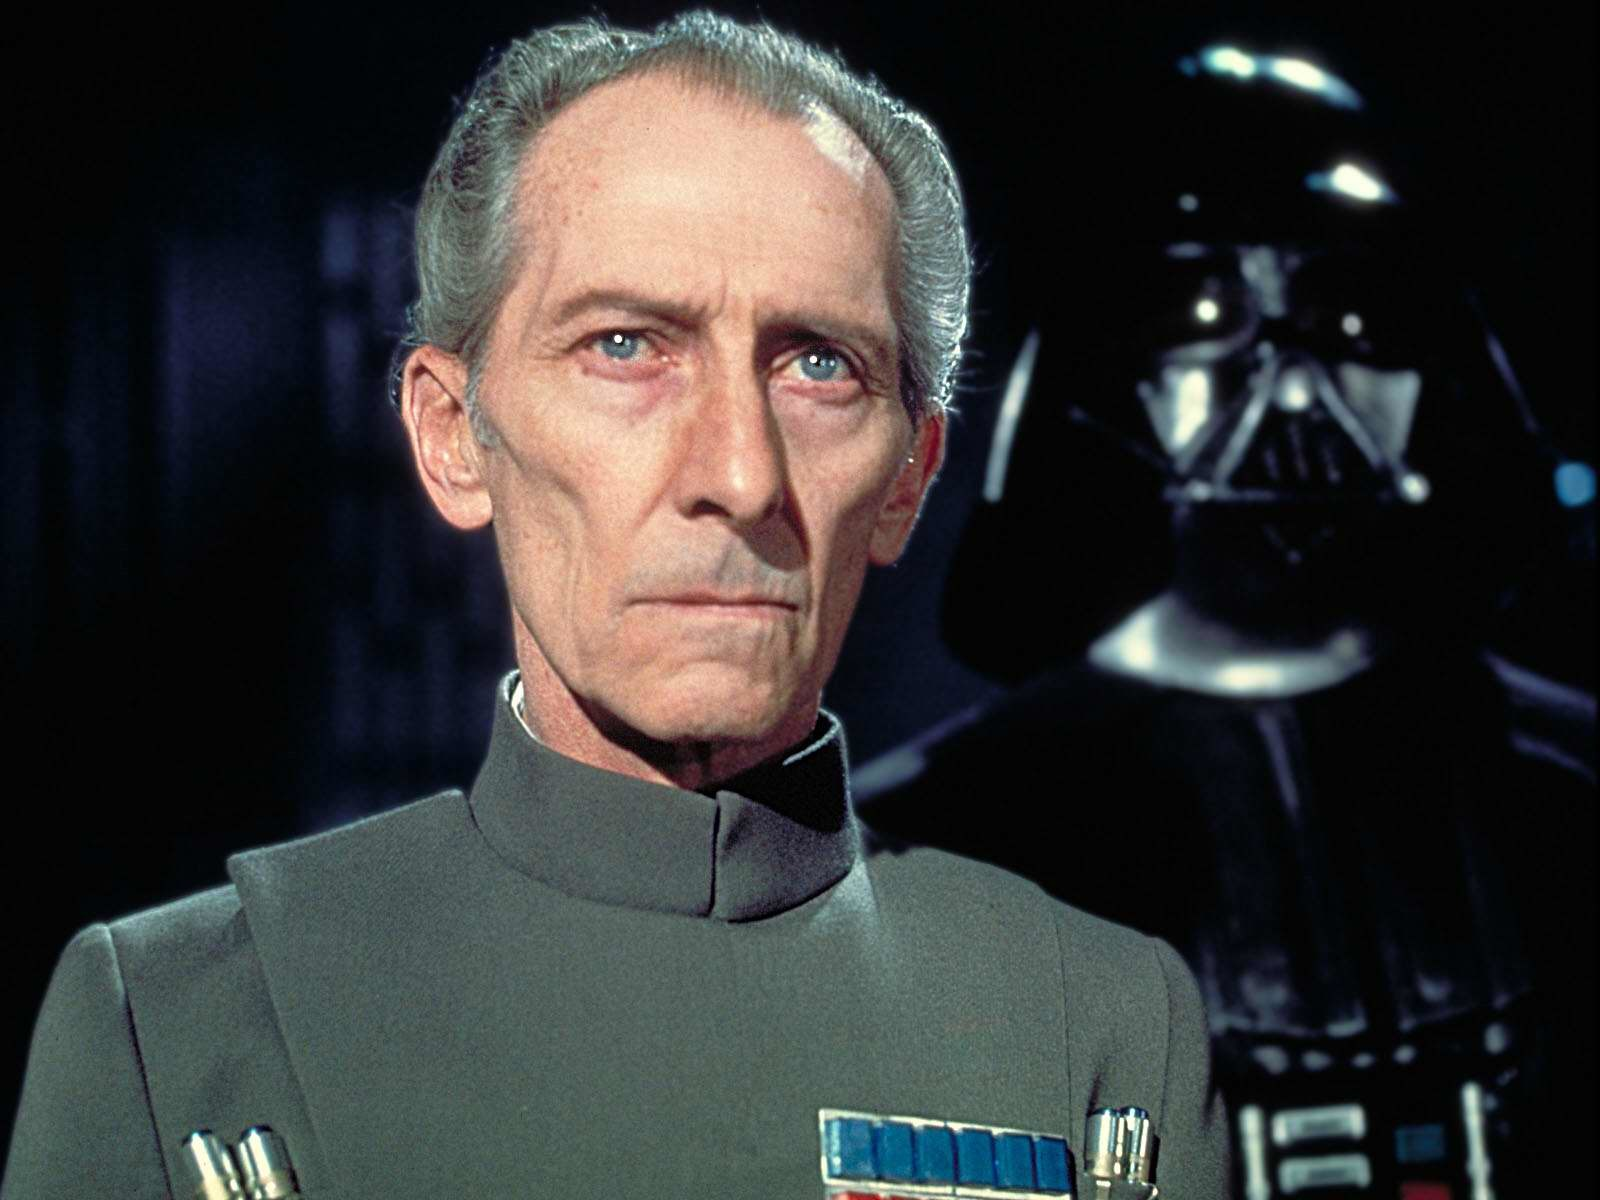 The Grand Moff Tarkin